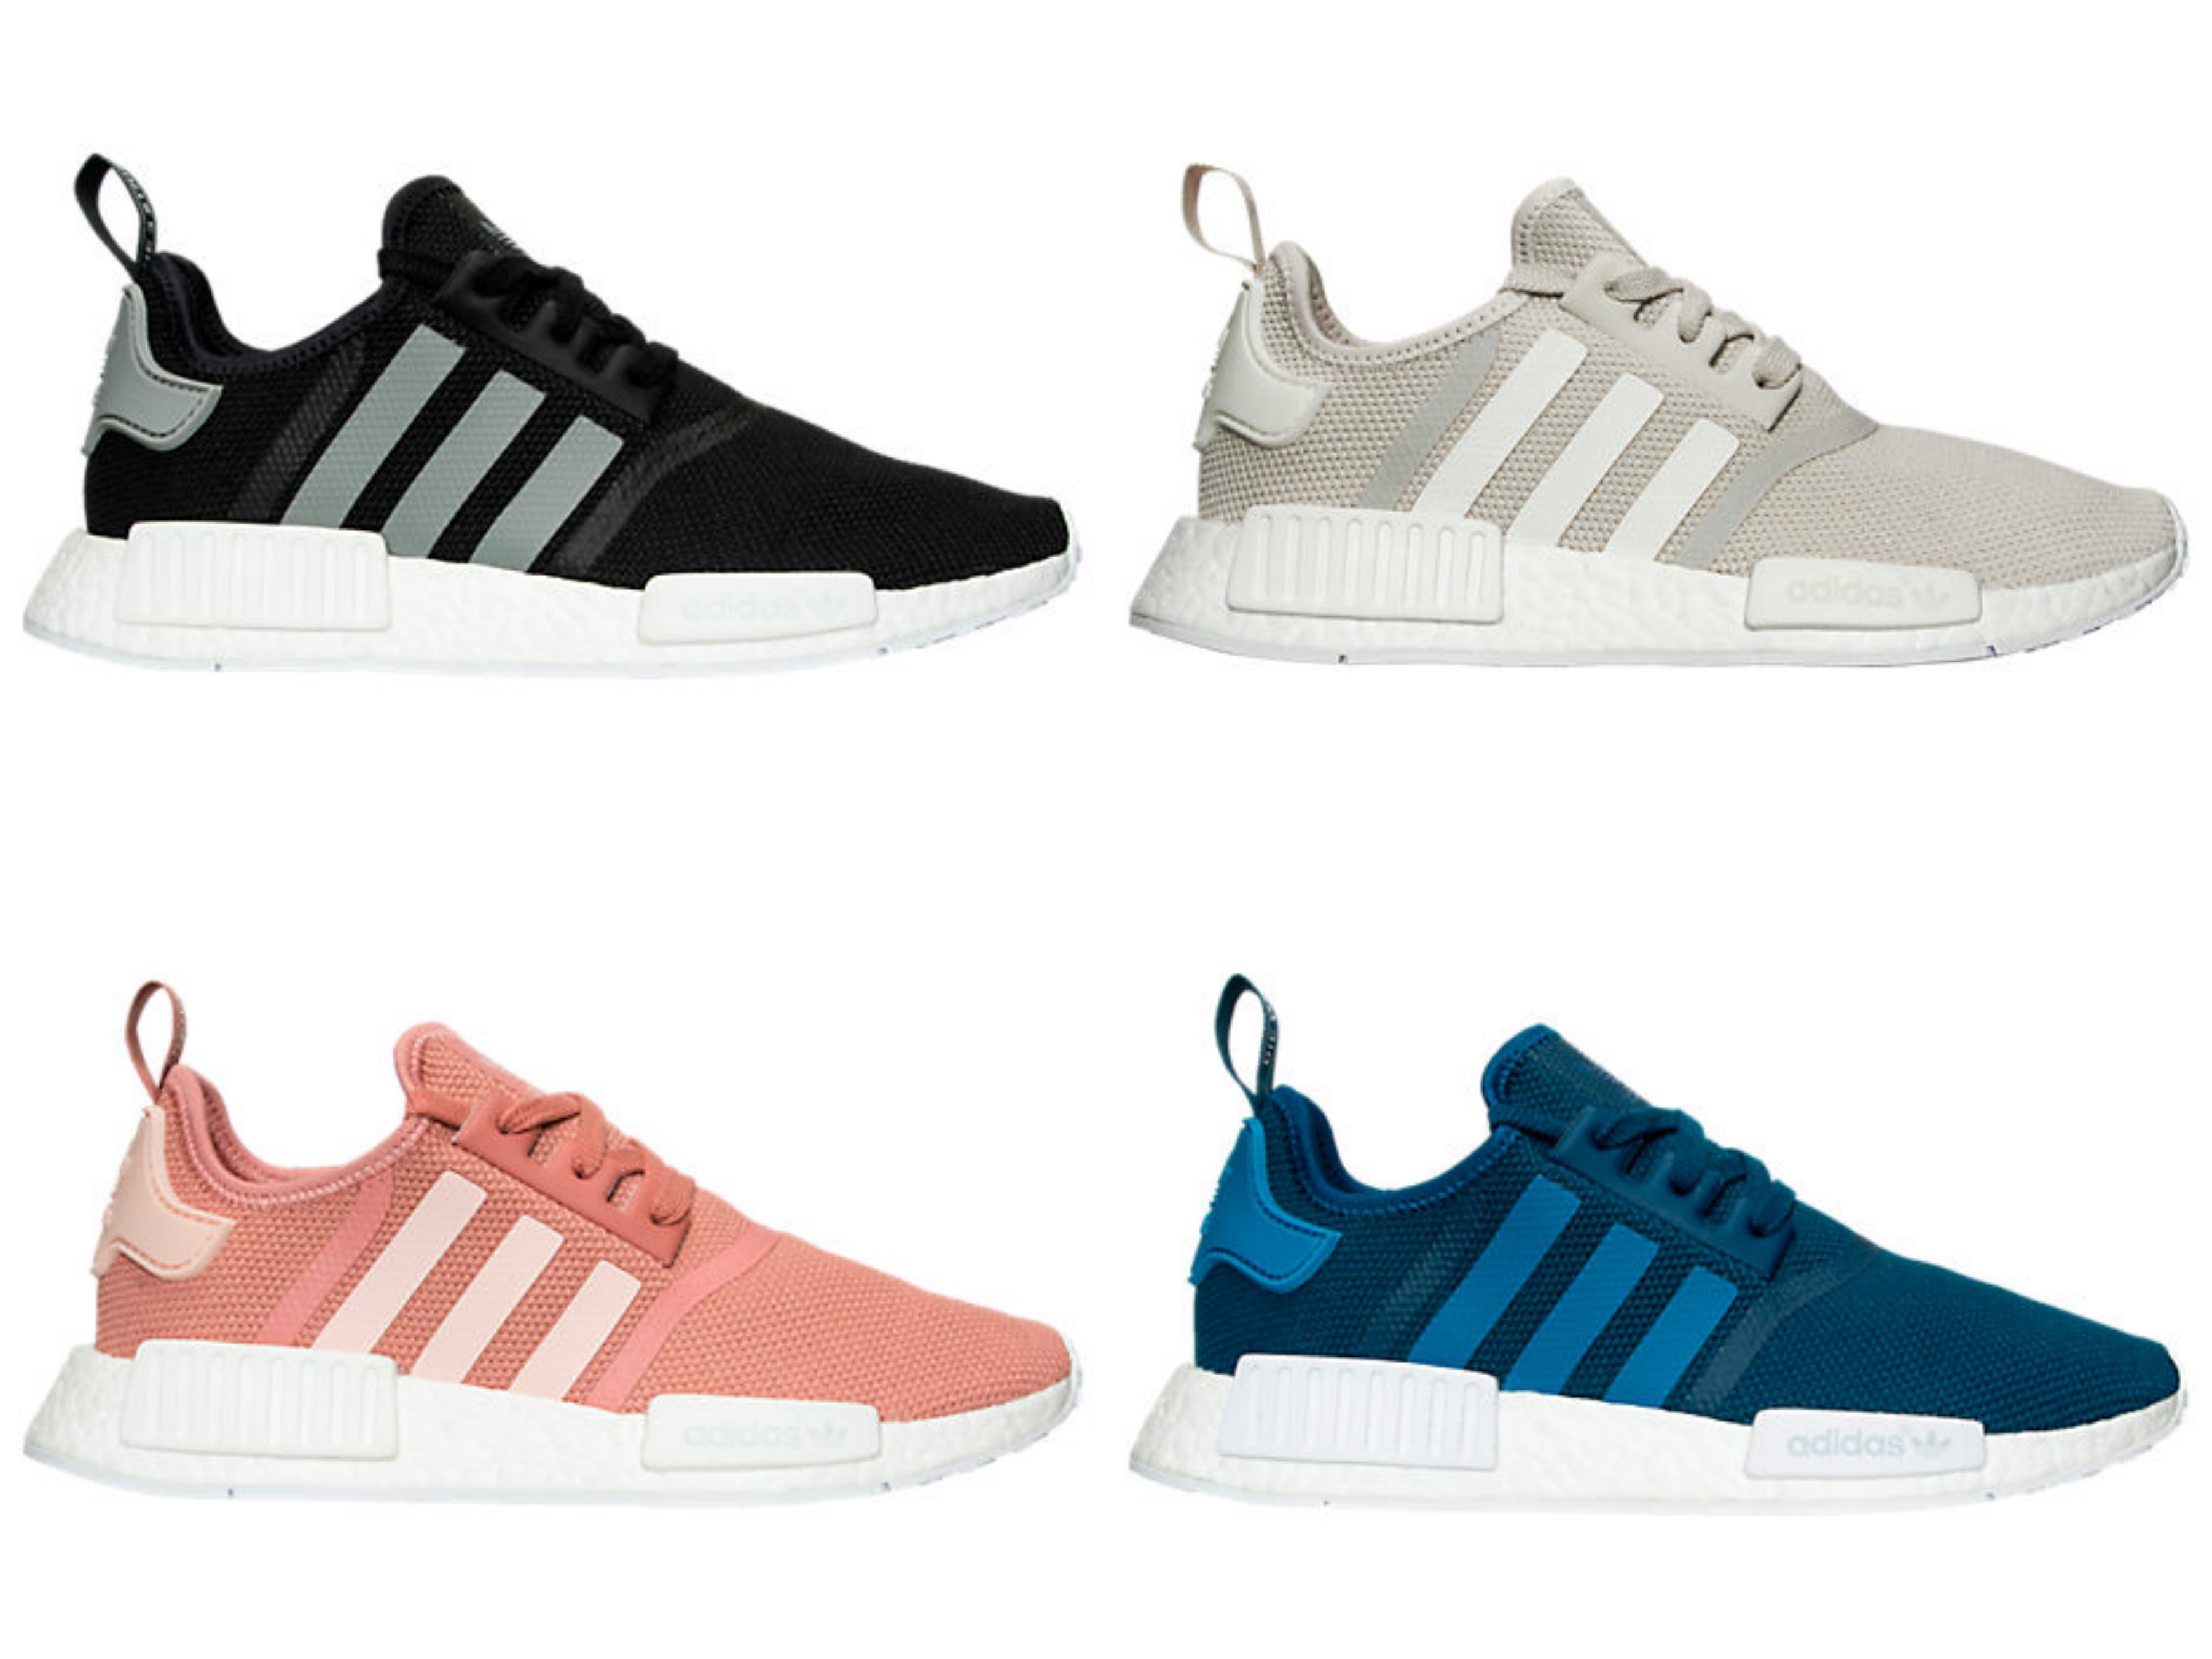 c2408bdf7 The adidas NMD R1 Runner is Available in Multiple Colorways ...